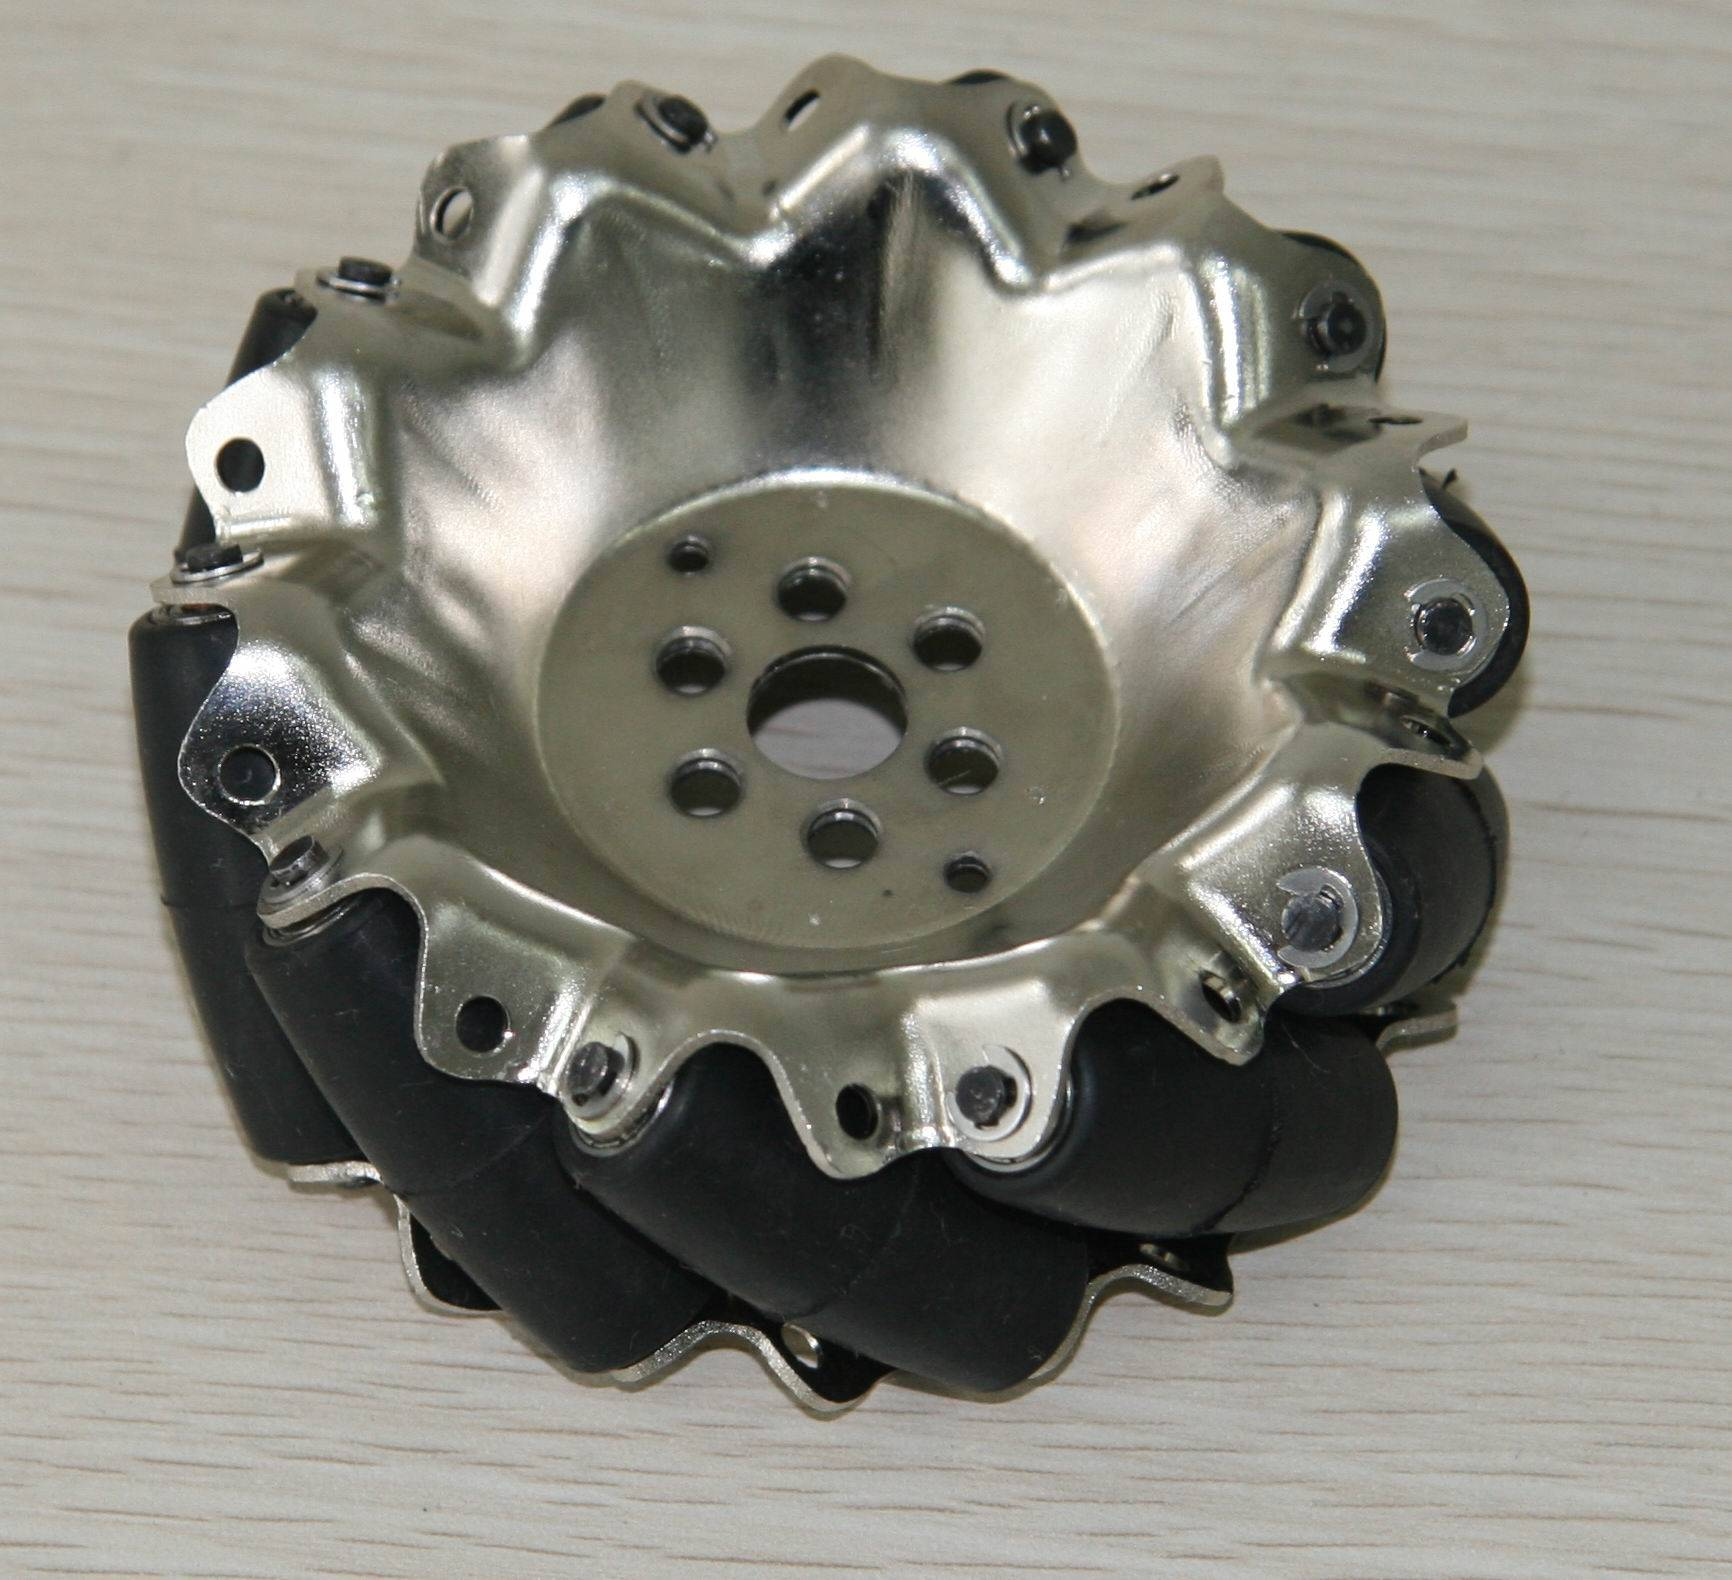 101.6mm steel mecanum wheel QMA-10